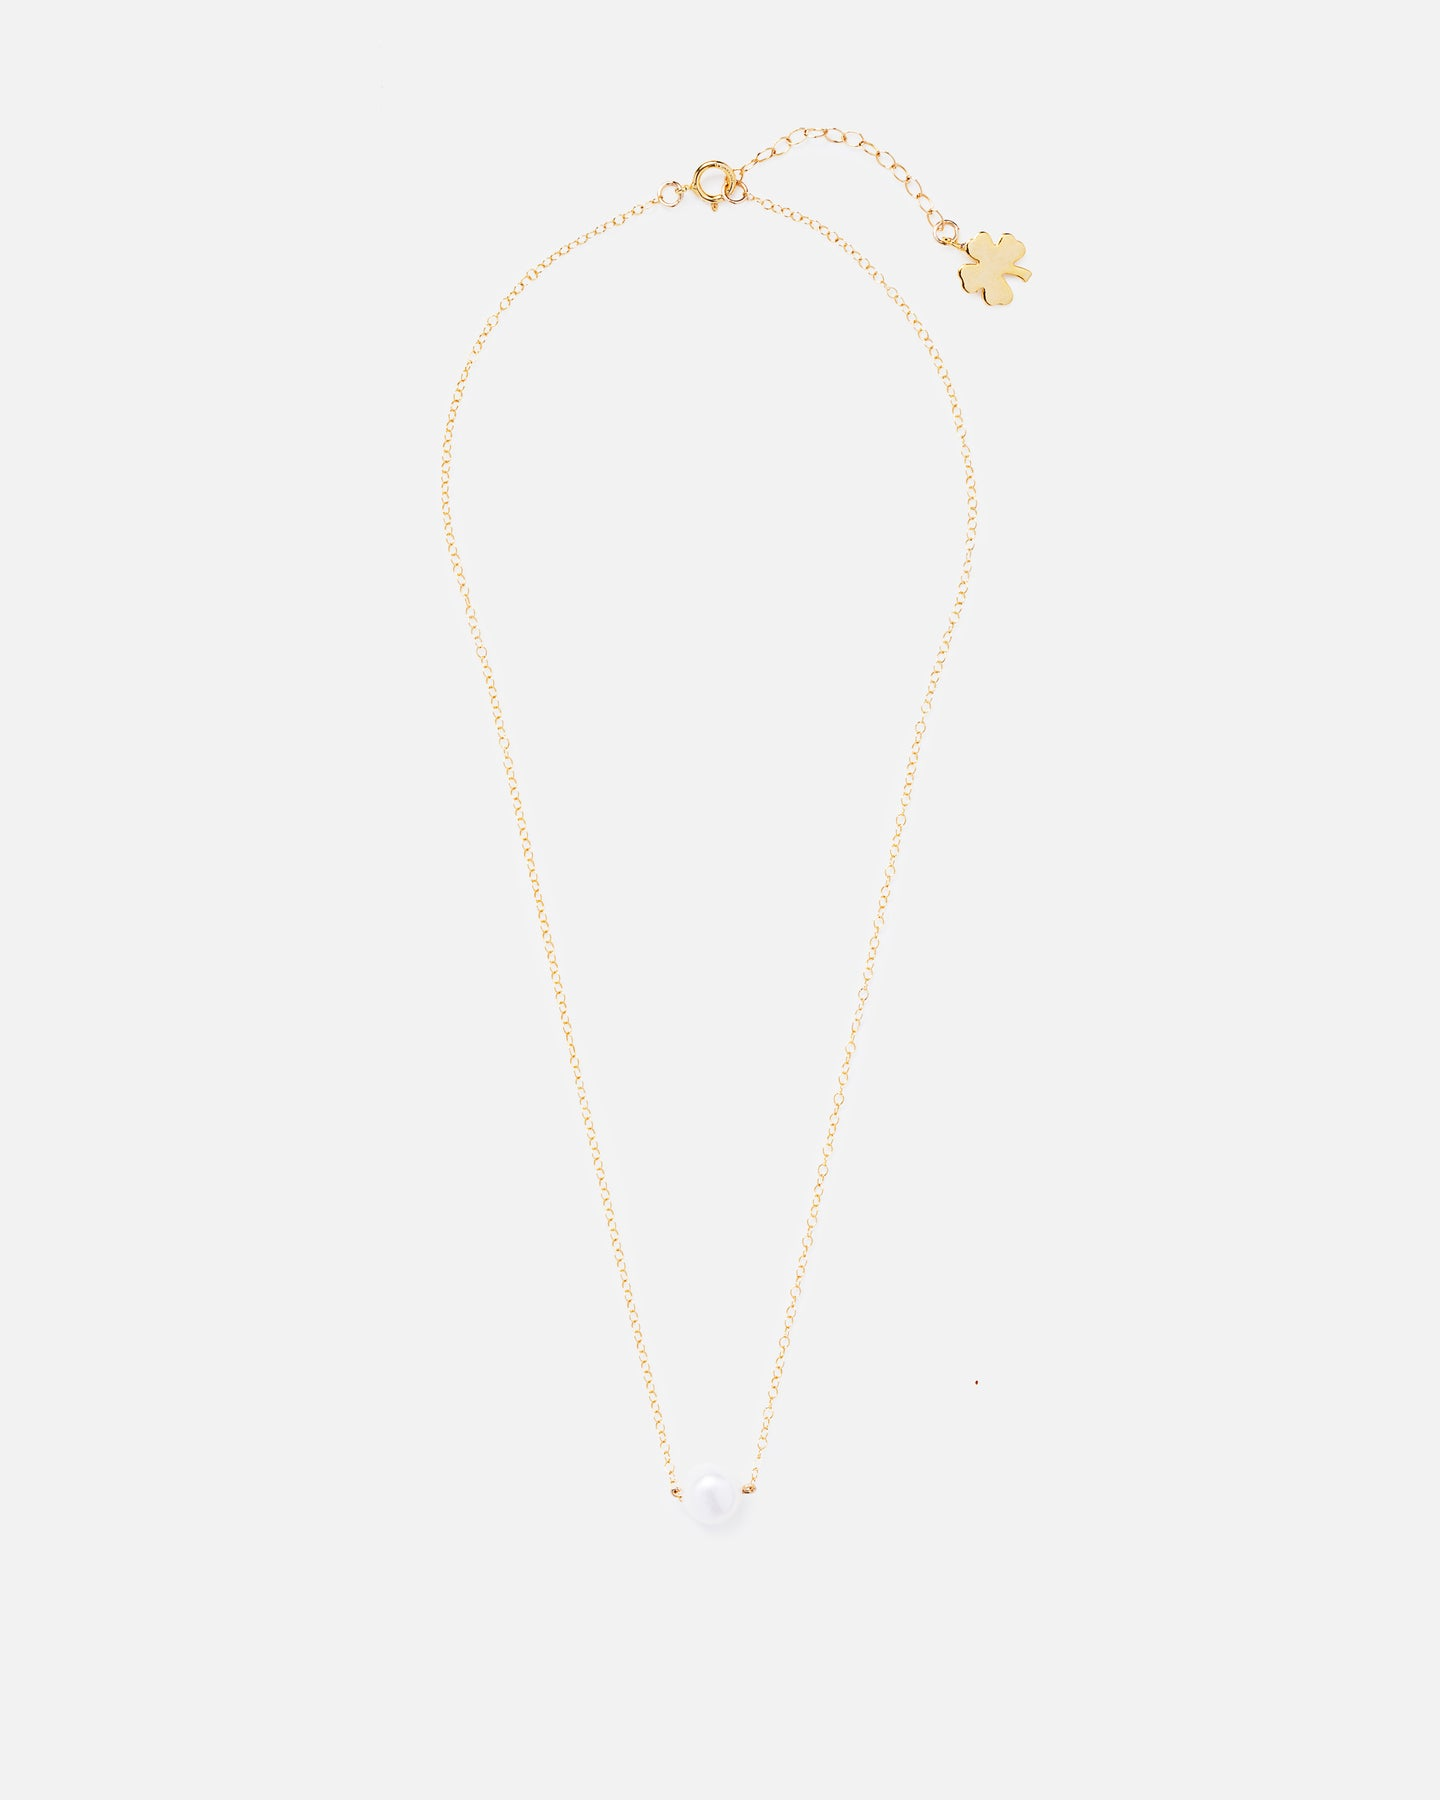 DOT 14K GOLD FILLED PEARL NECKLACE